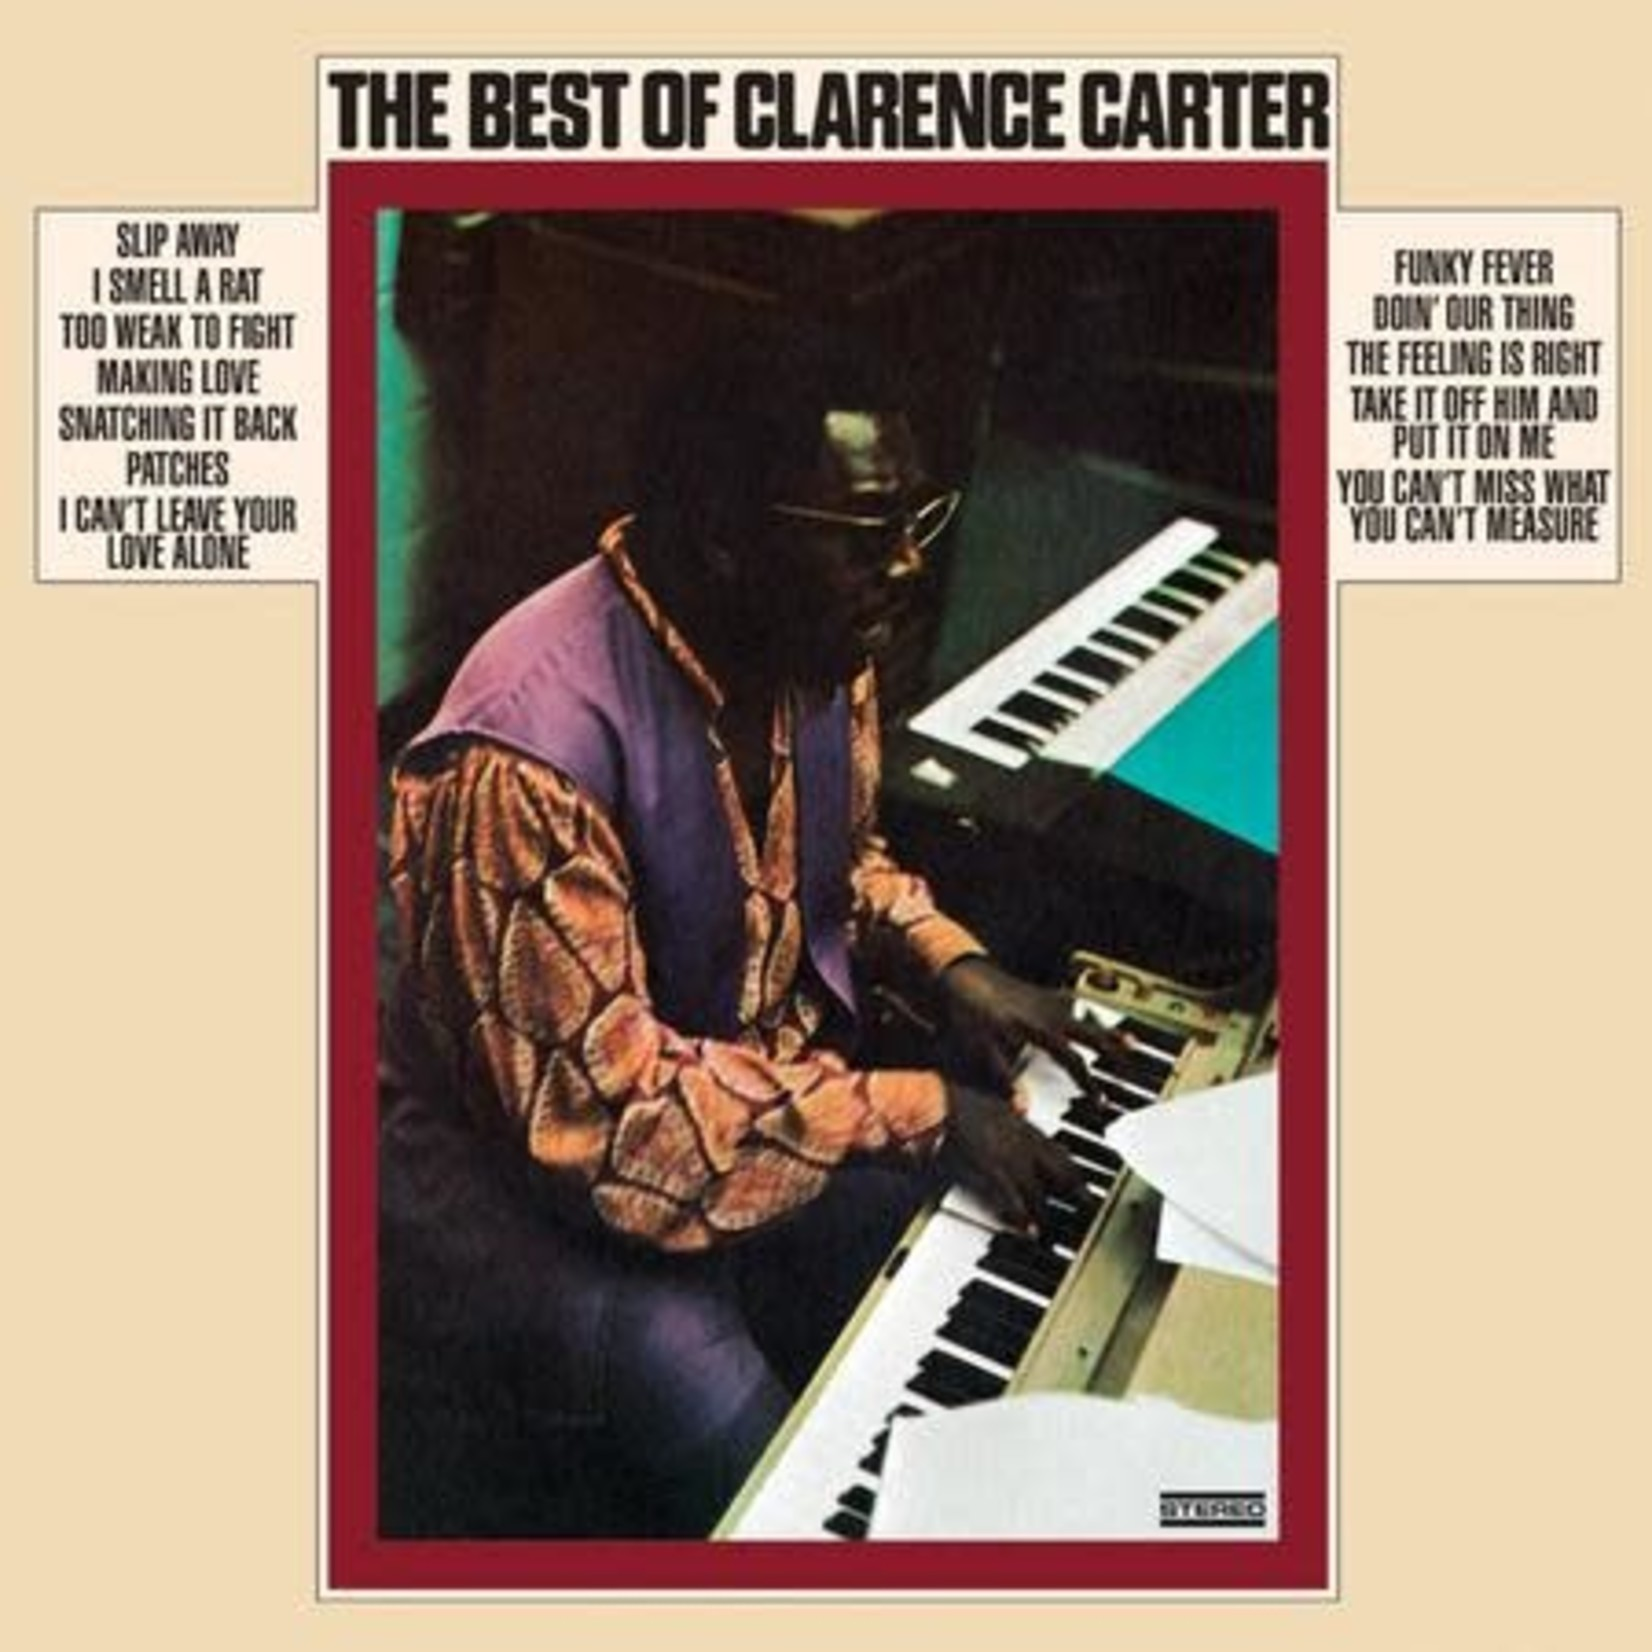 Vinyl Clarence Carter - The Best Of. $$